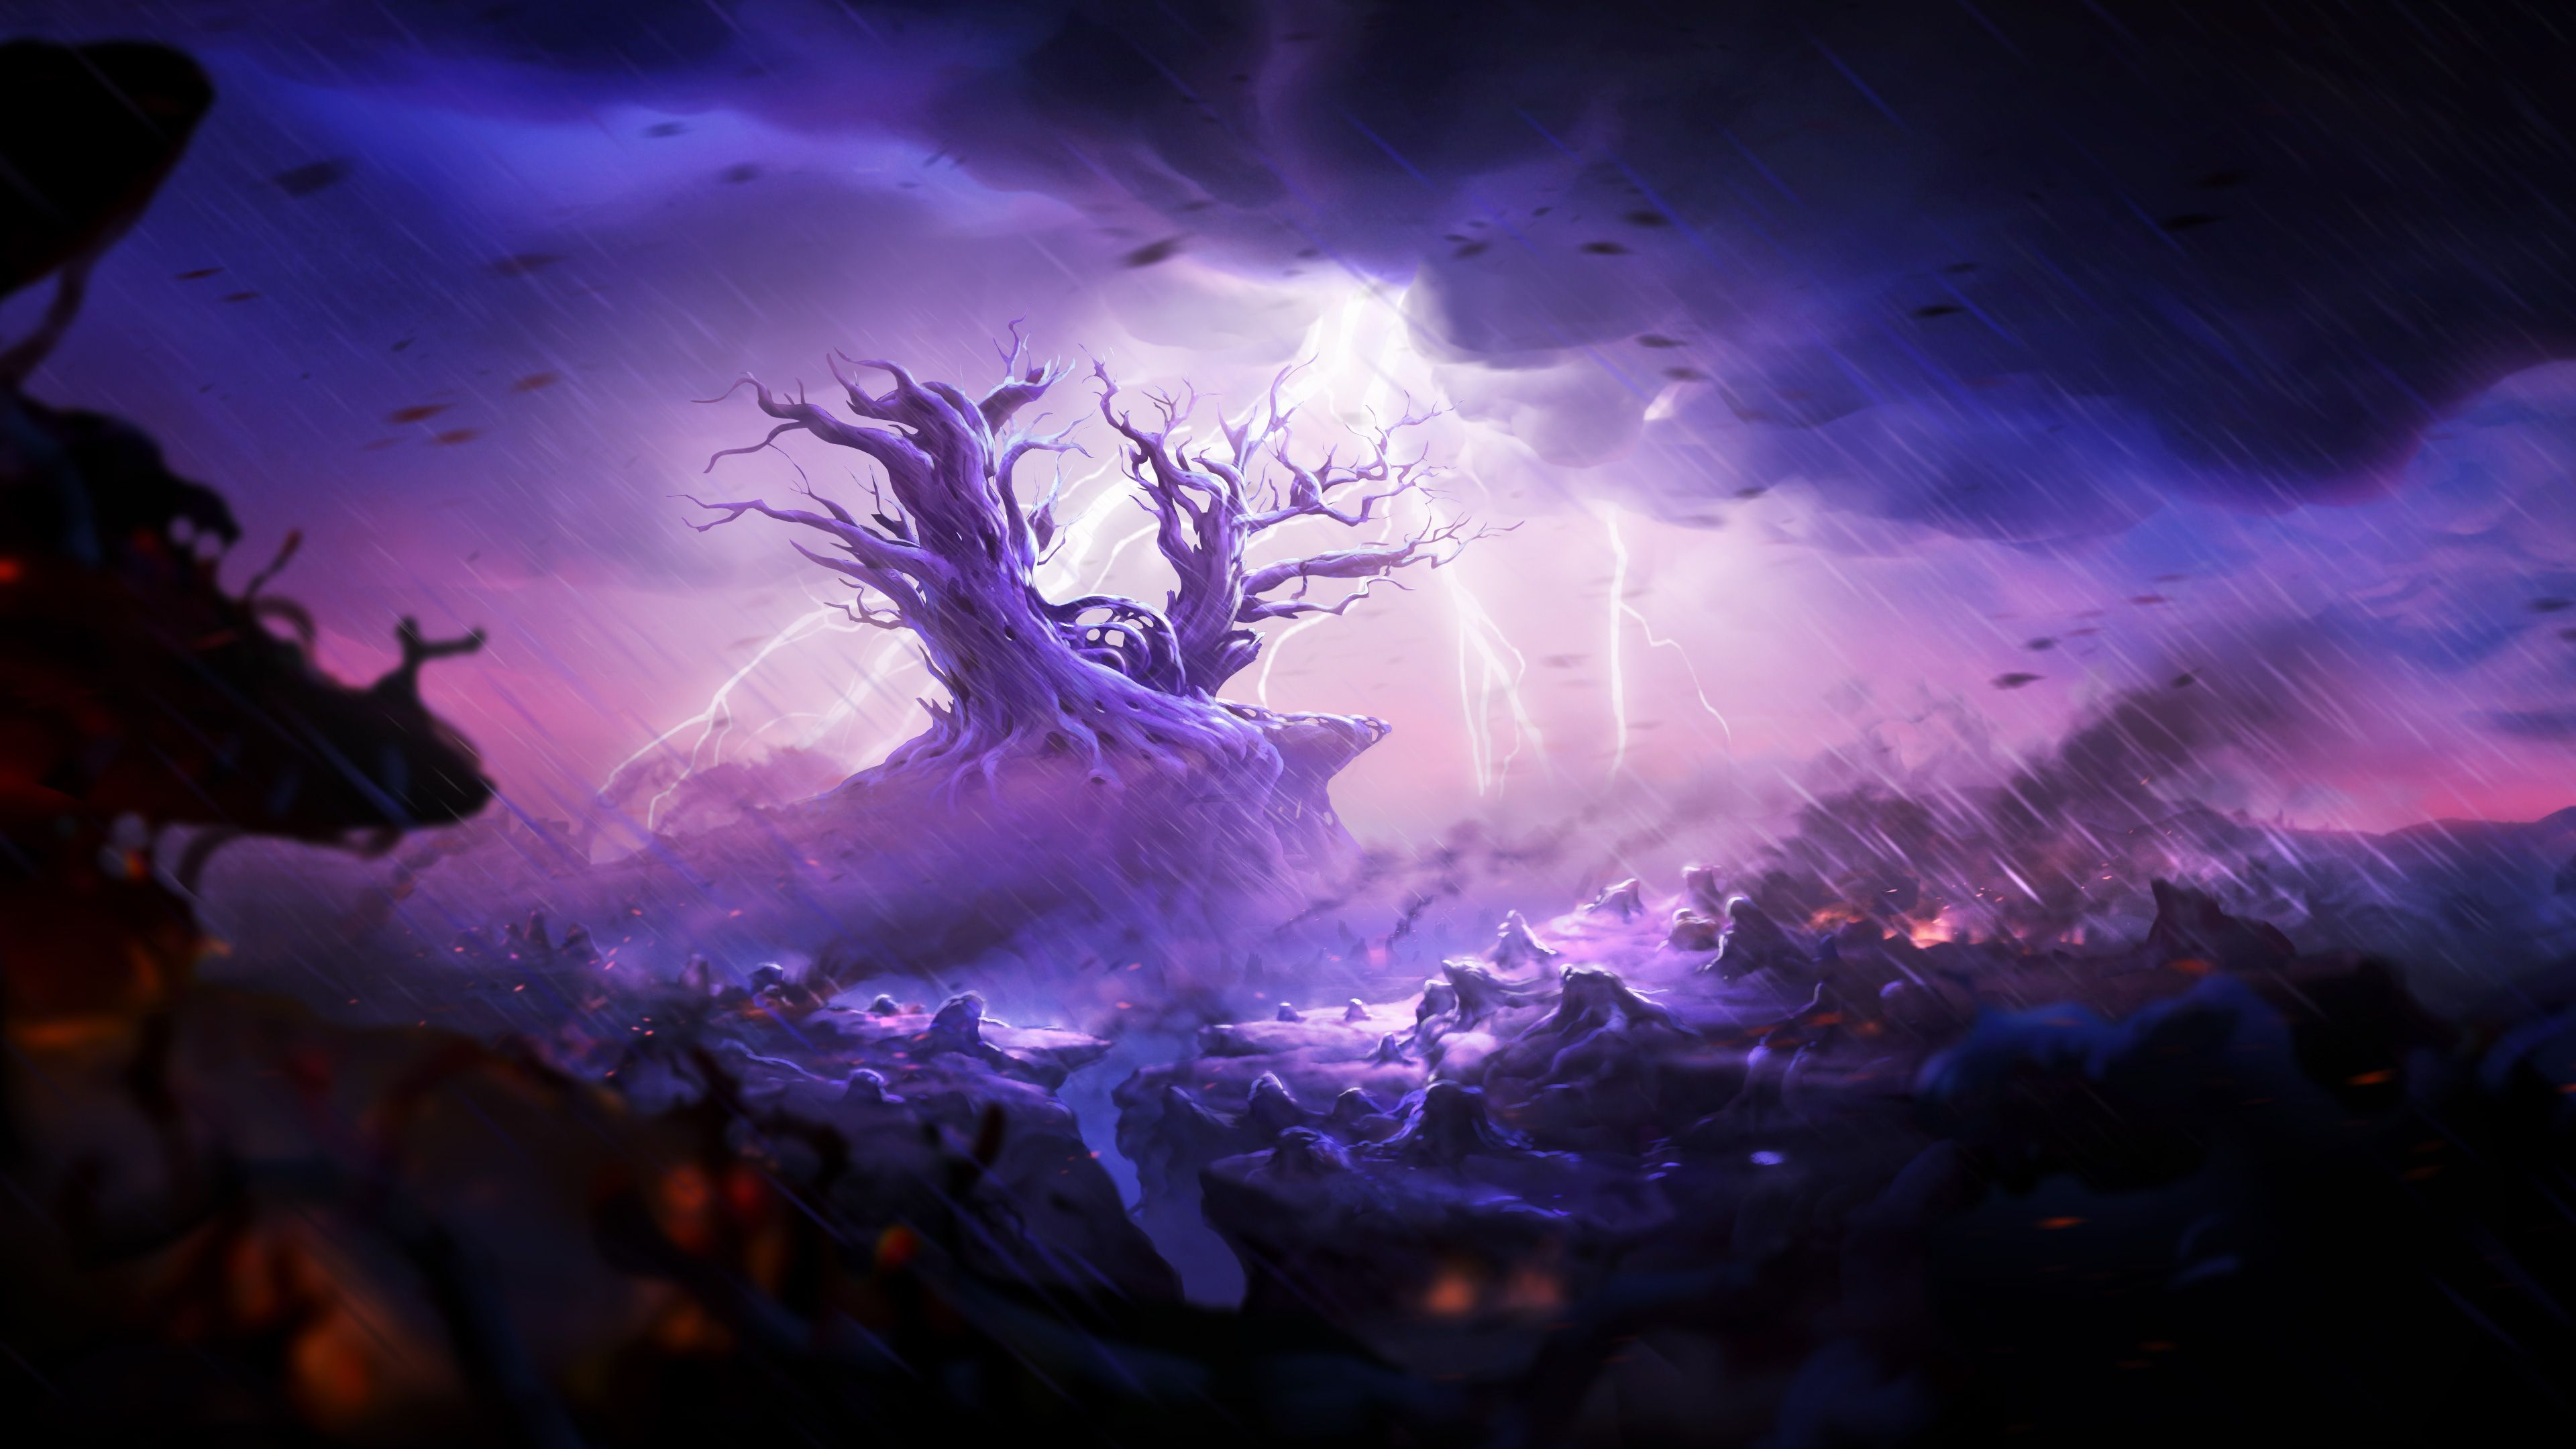 Ori And The Blind Forest 4k Wallpapers Top Free Ori And The Blind Forest 4k Backgrounds Wallpaperaccess 4k Wallpaper Download Hd Wallpaper Hopes And Dreams